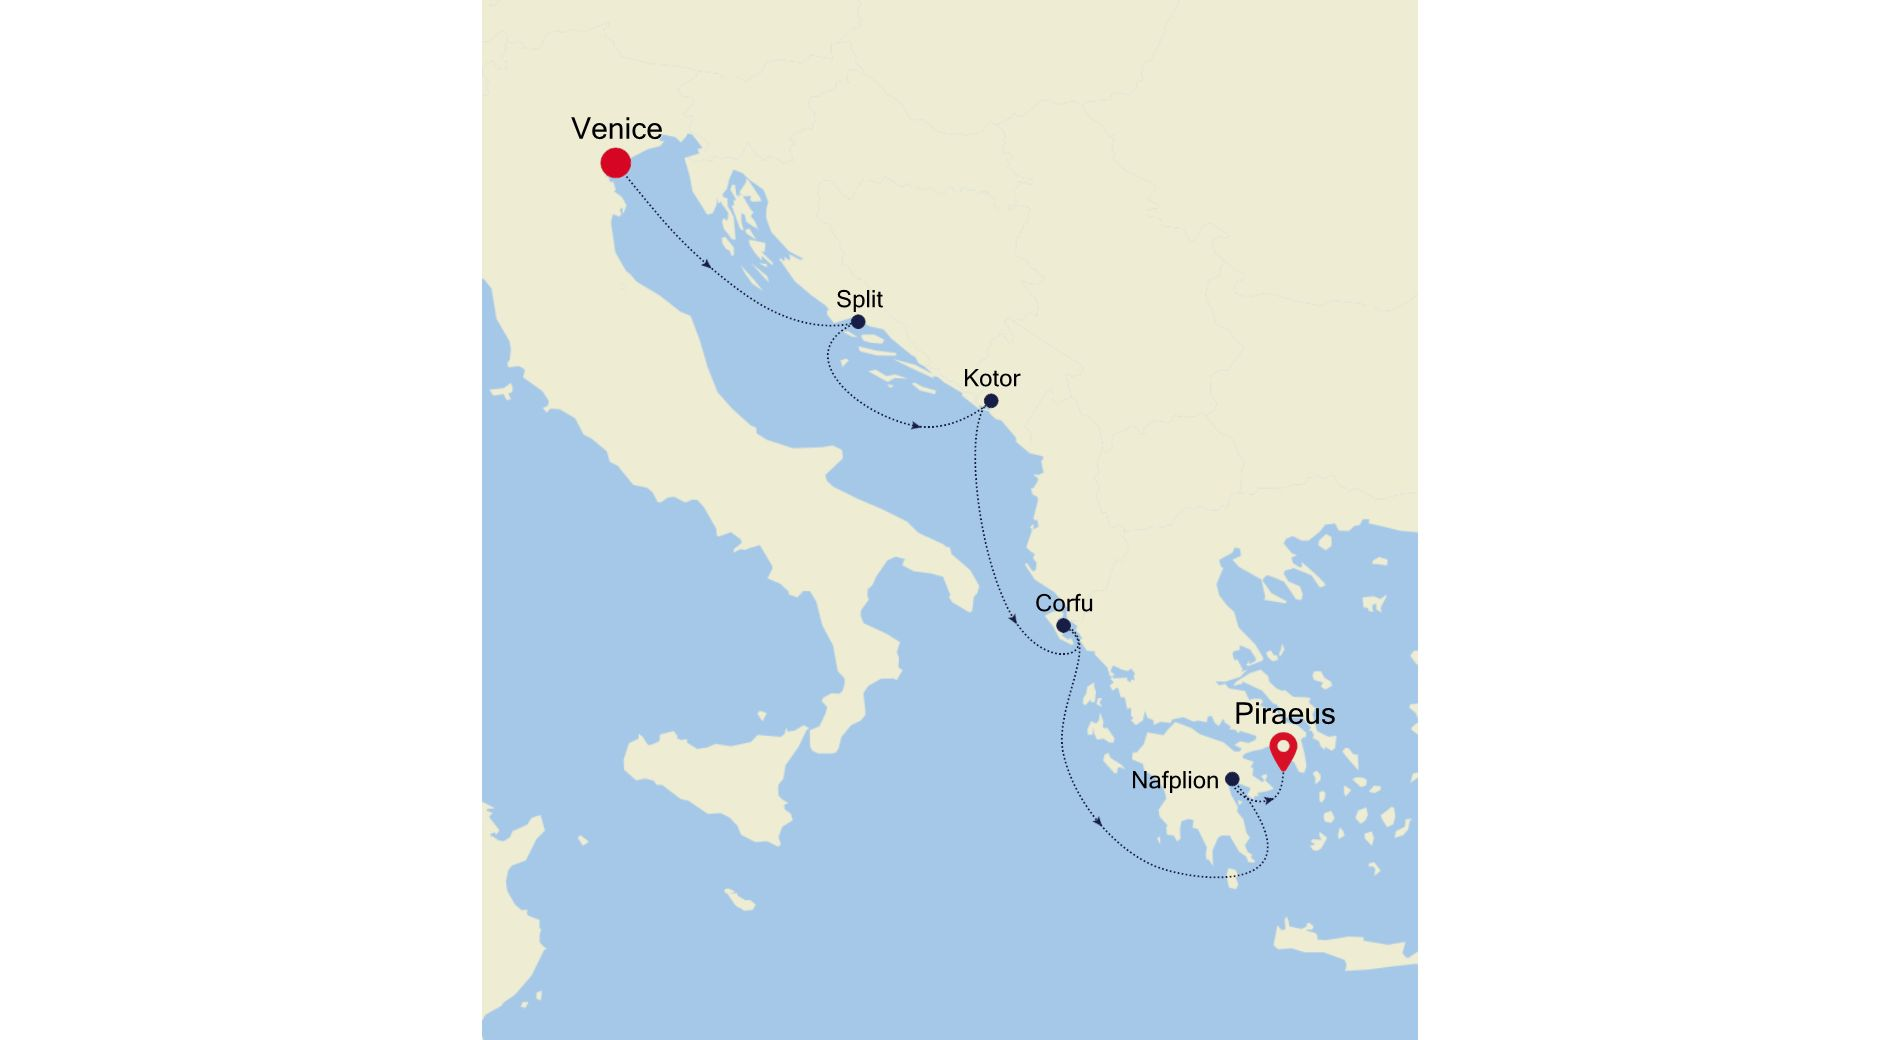 3929 - Venice to Piraeus